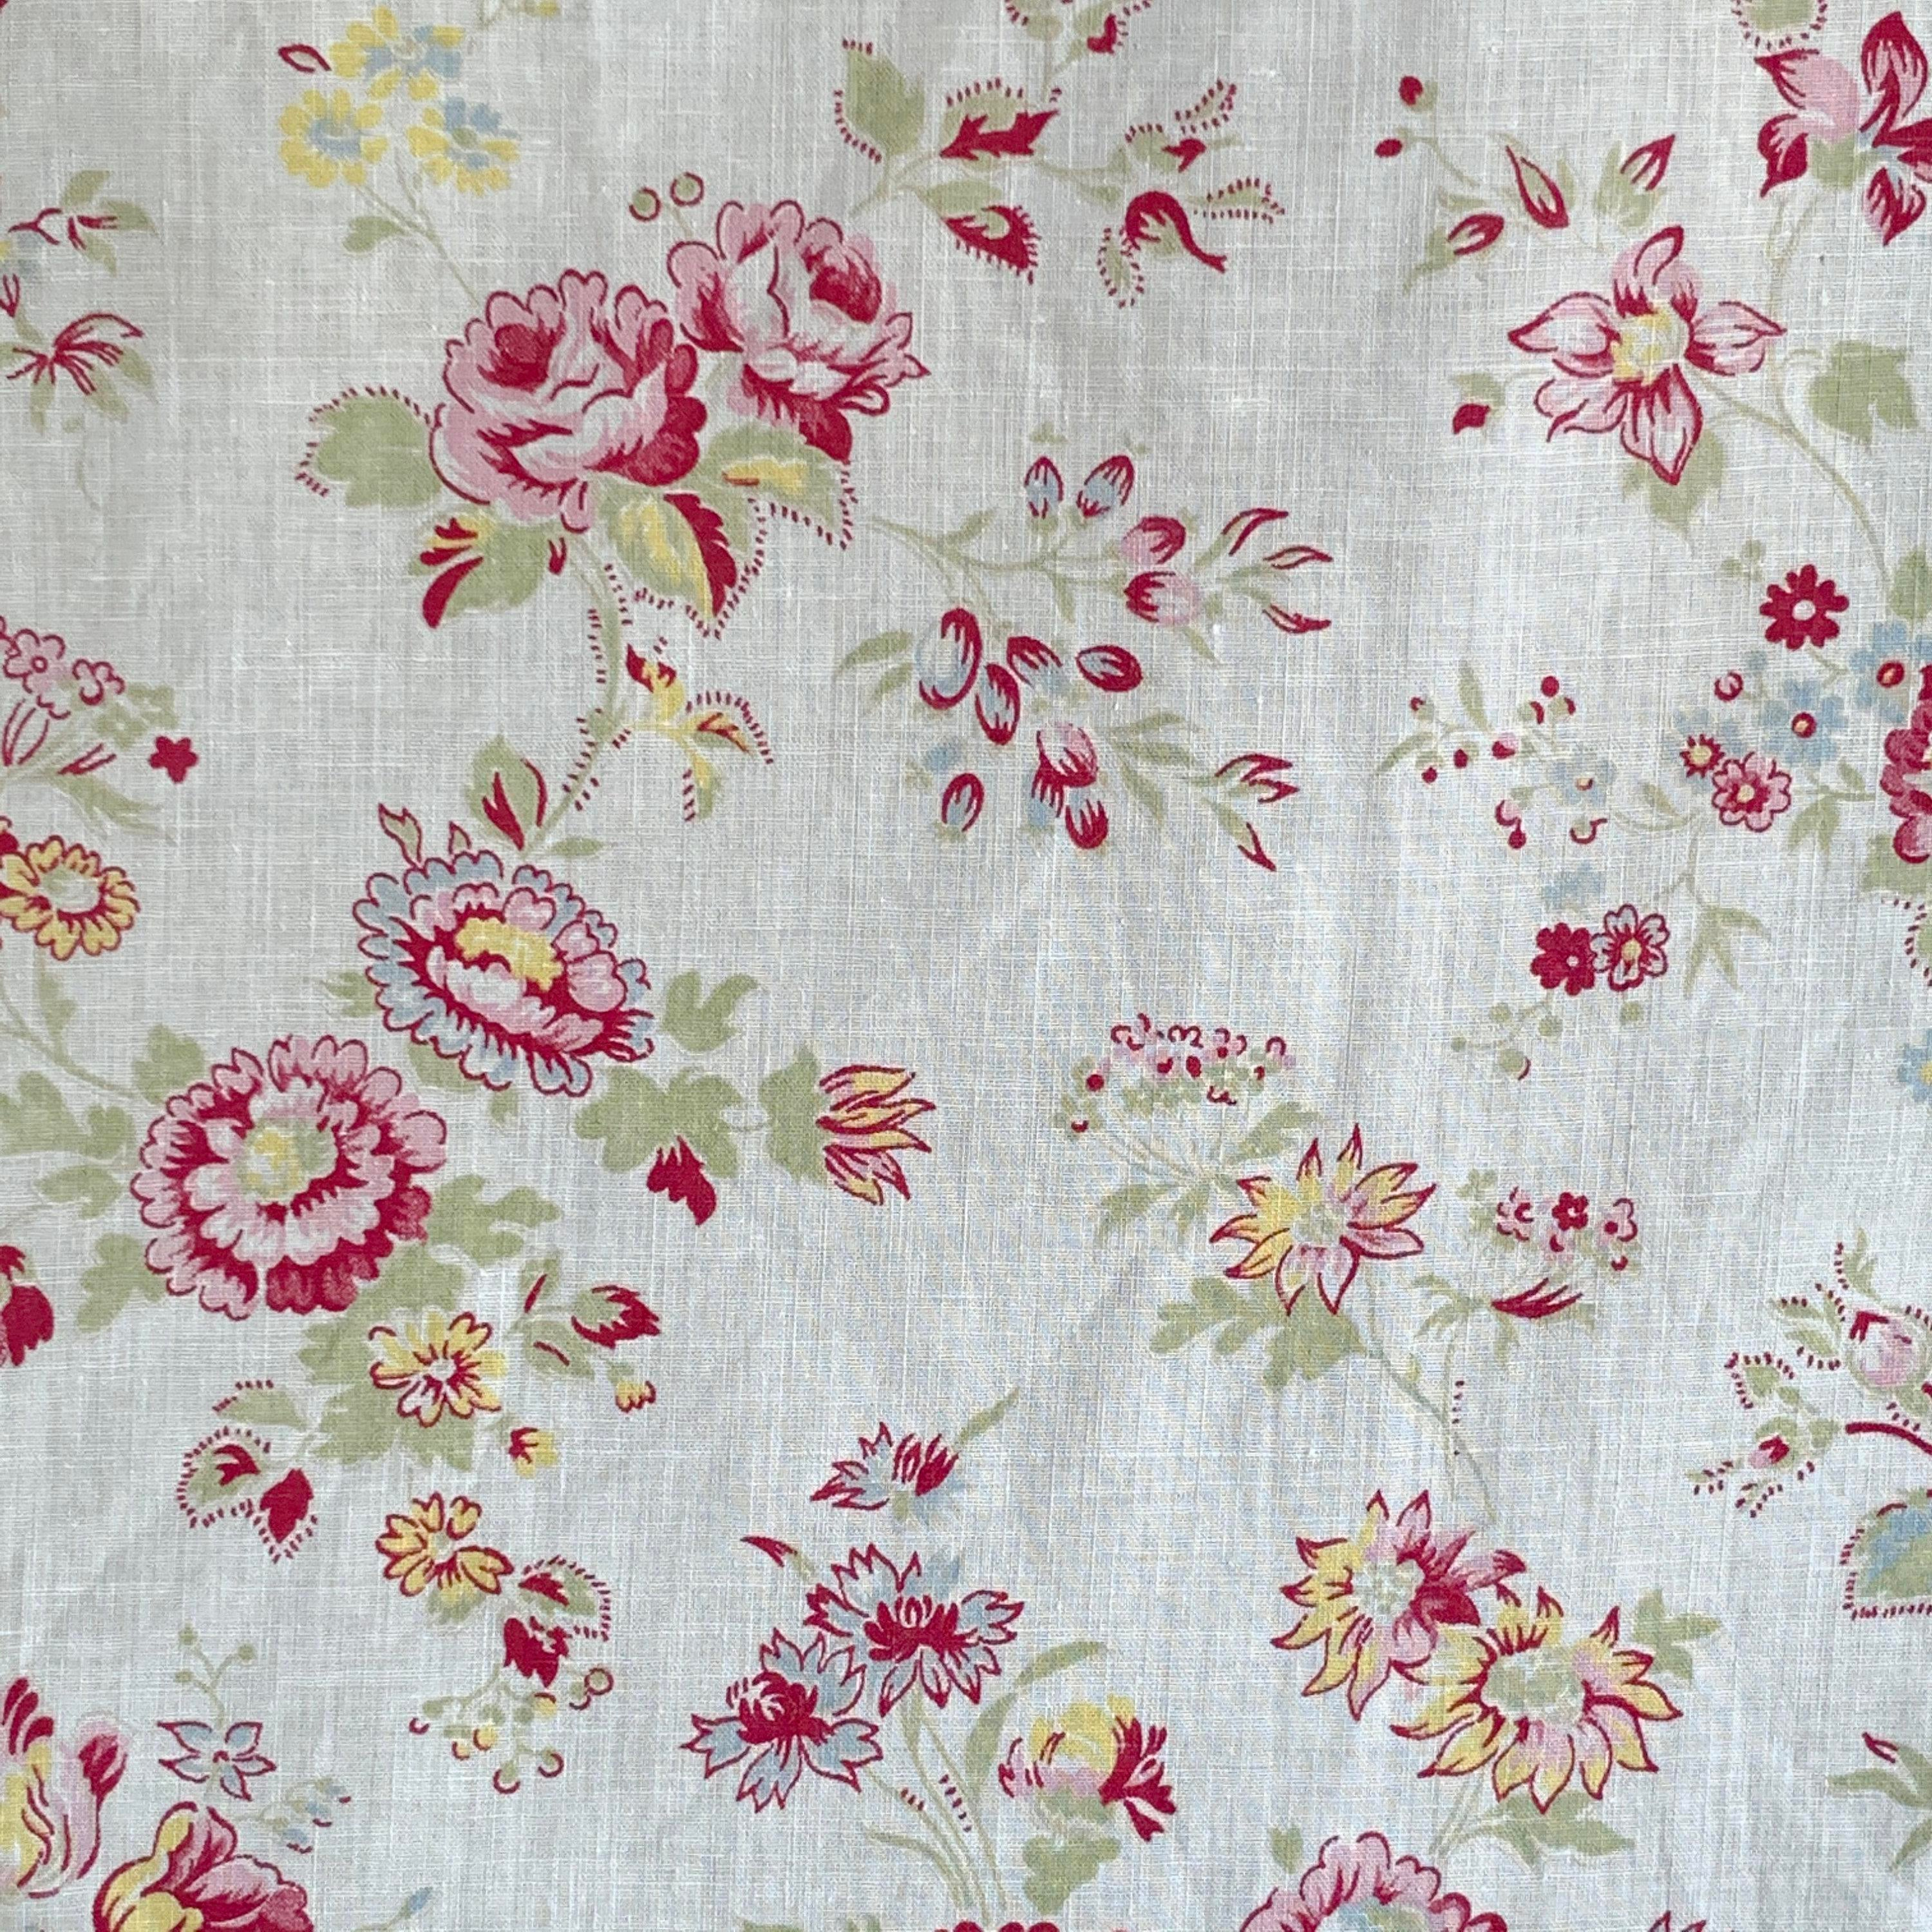 1930/'s French cotton fabric material small scale floral heavy weight